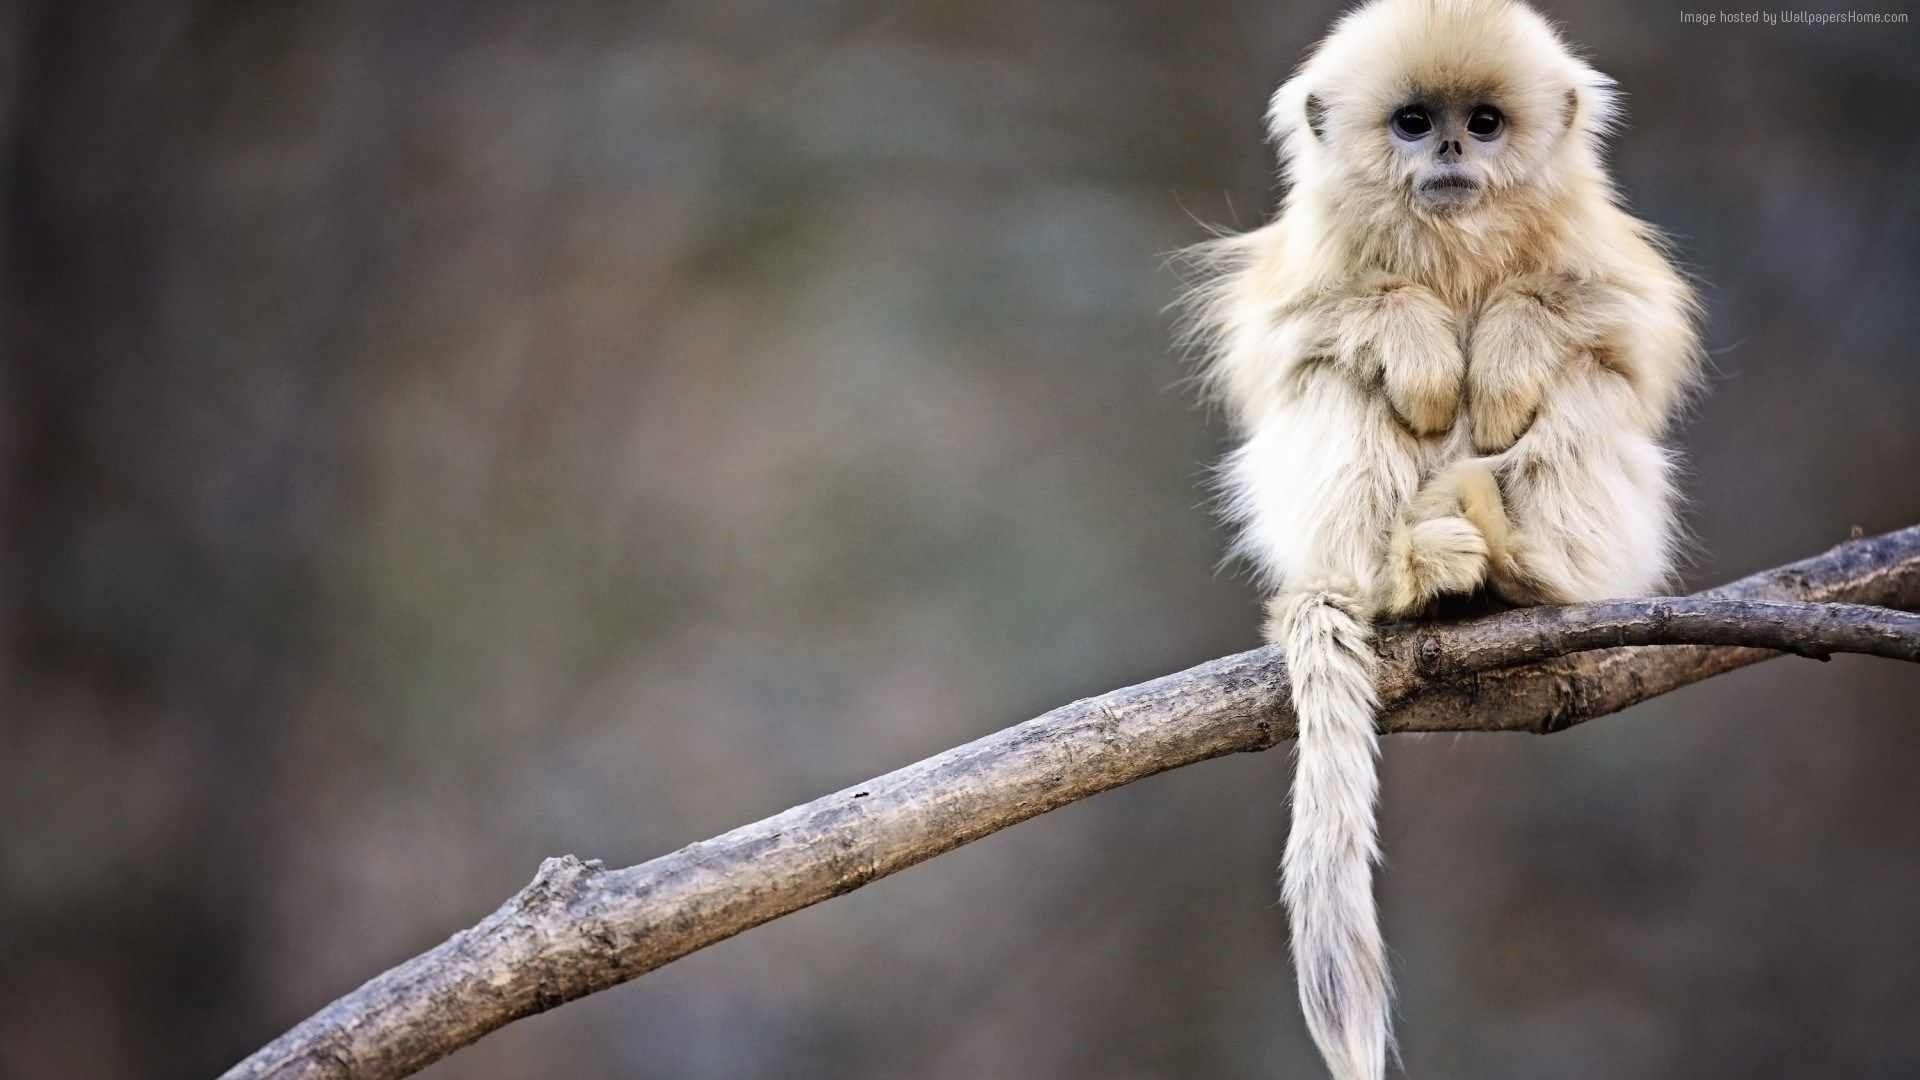 snub nosed monkey wallpaper animals